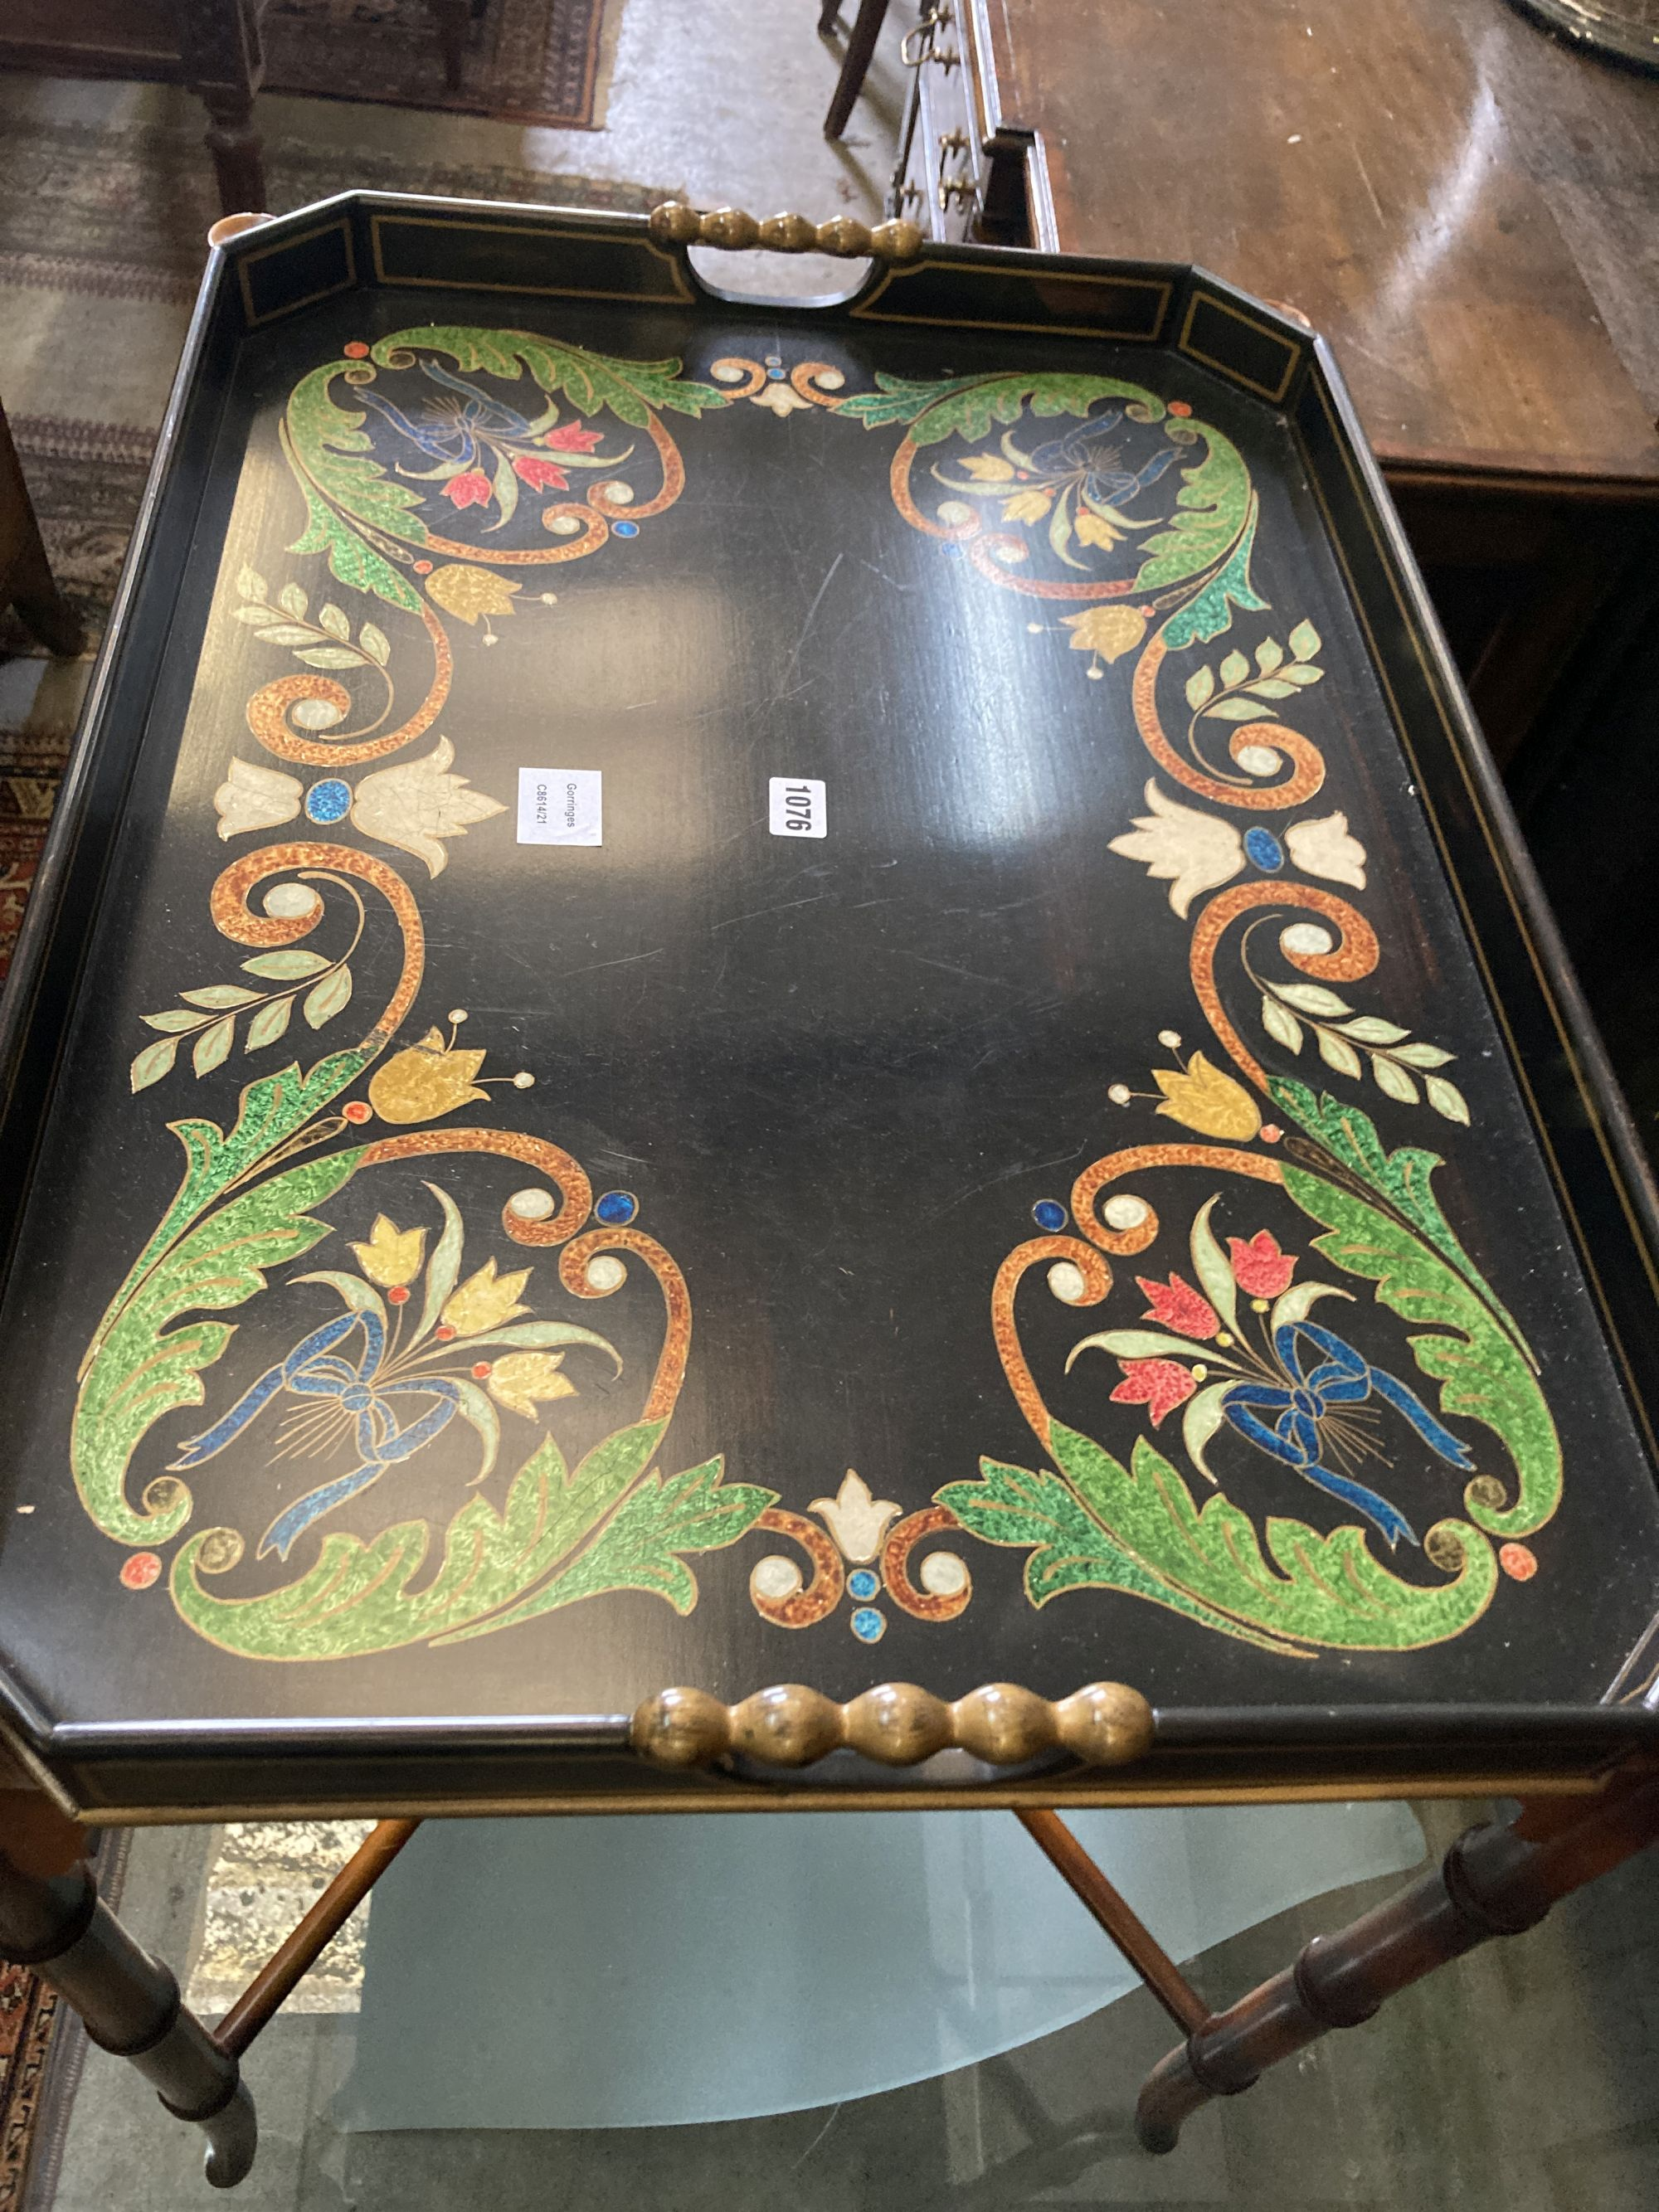 A Julian Chichester painted tray top occasional table, width 74cm, depth 54cm, height 74cm - Image 2 of 4